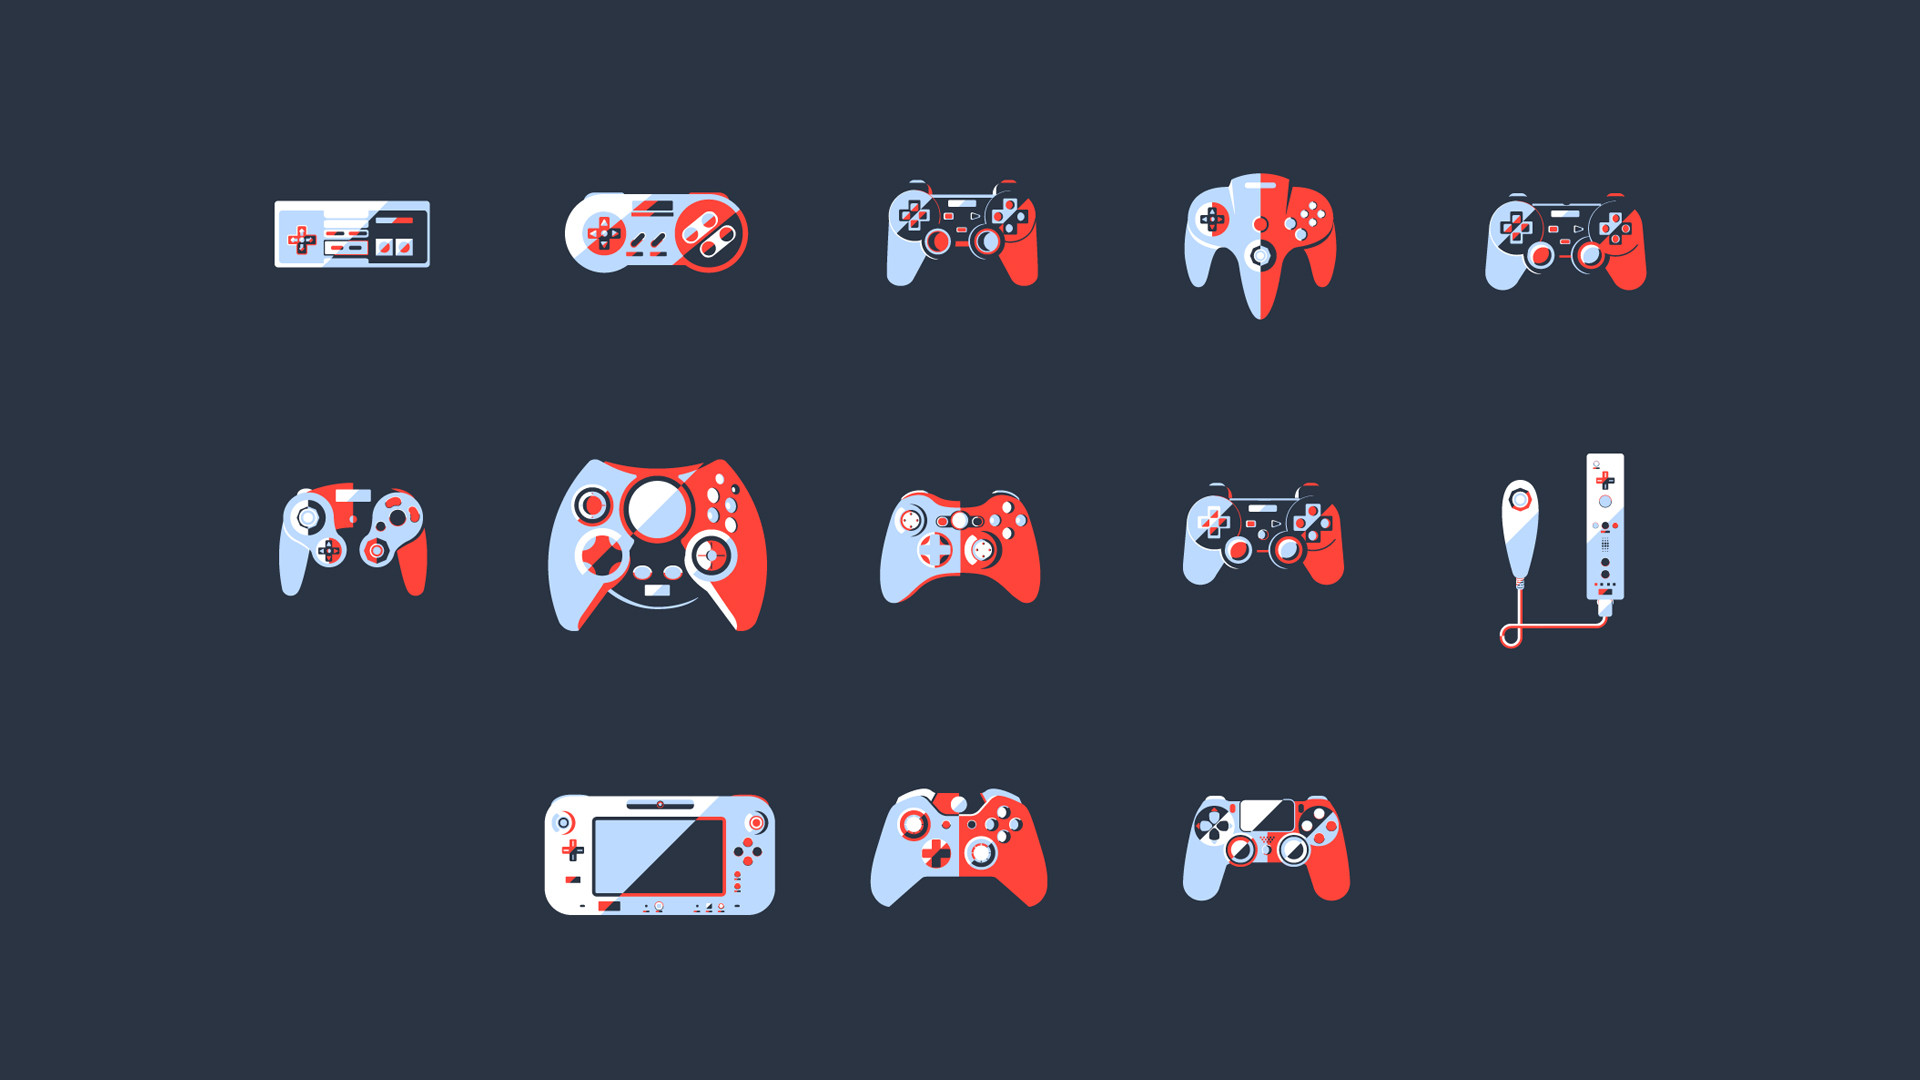 Video Game Controller Wallpapers For Iphone   Amazing Wallpapers    Pinterest   Game controller and Wallpaper